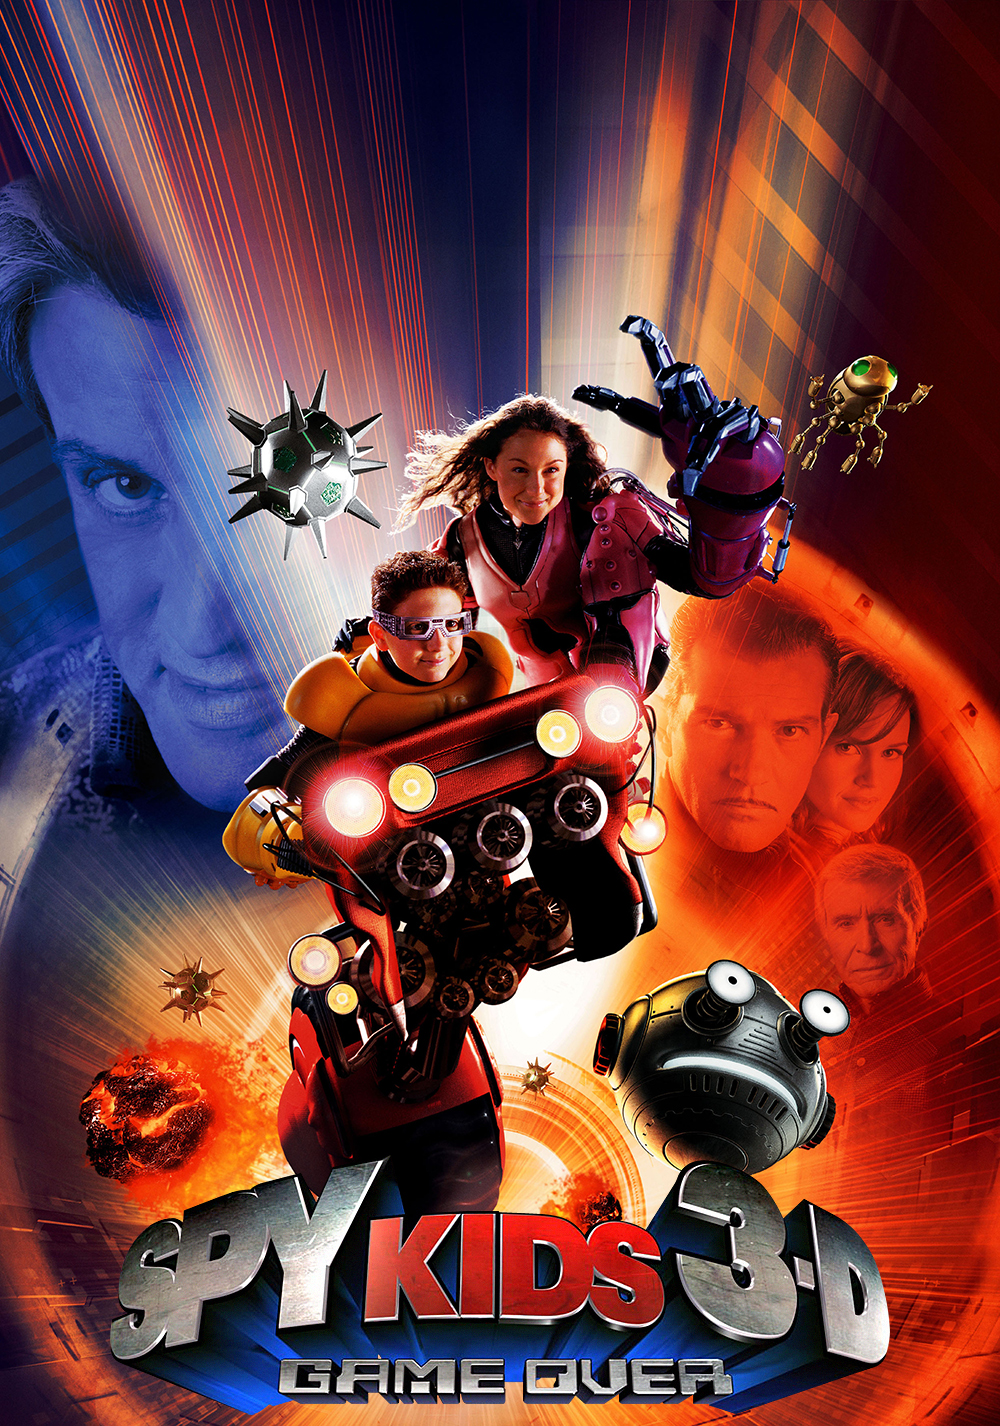 Spy kids 3-d game over download full version pc game free that.